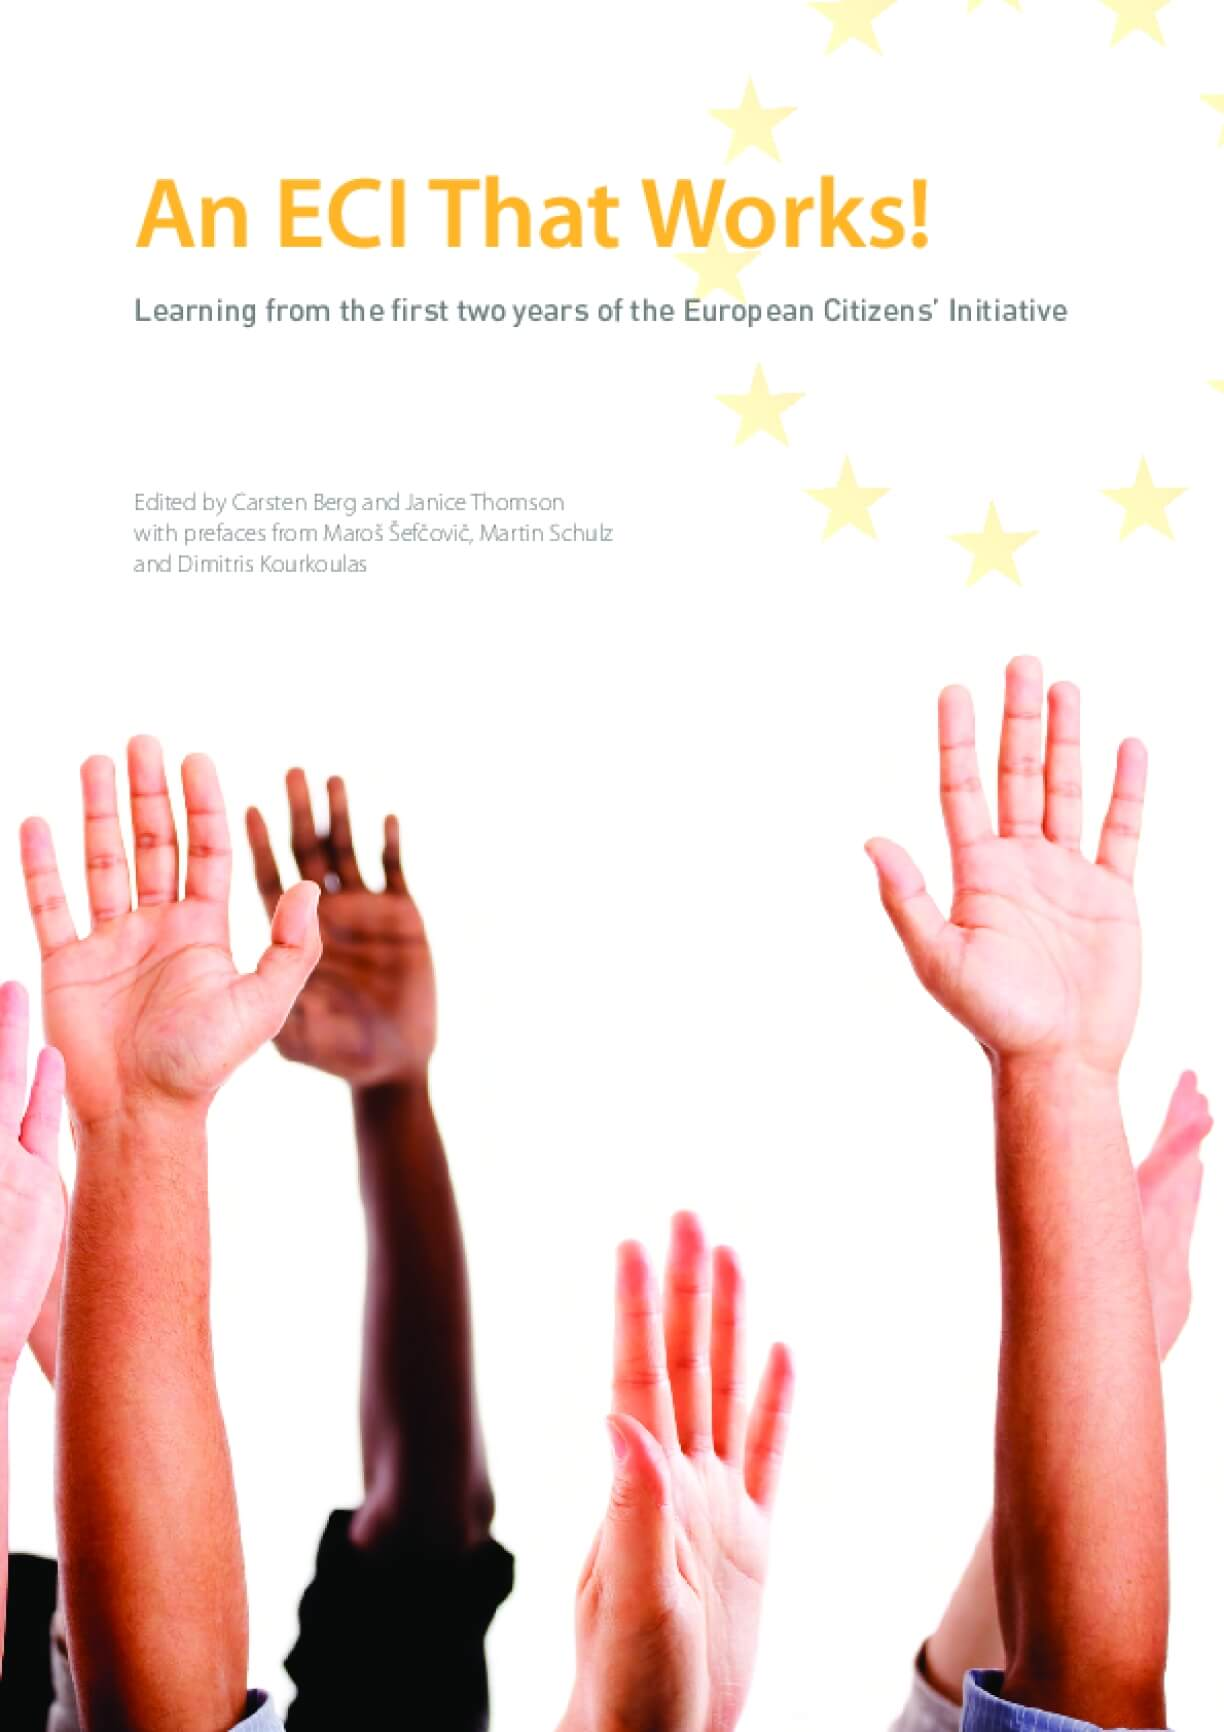 An ECI That Works! Learning from the first two years of the European Citizens' Initiative